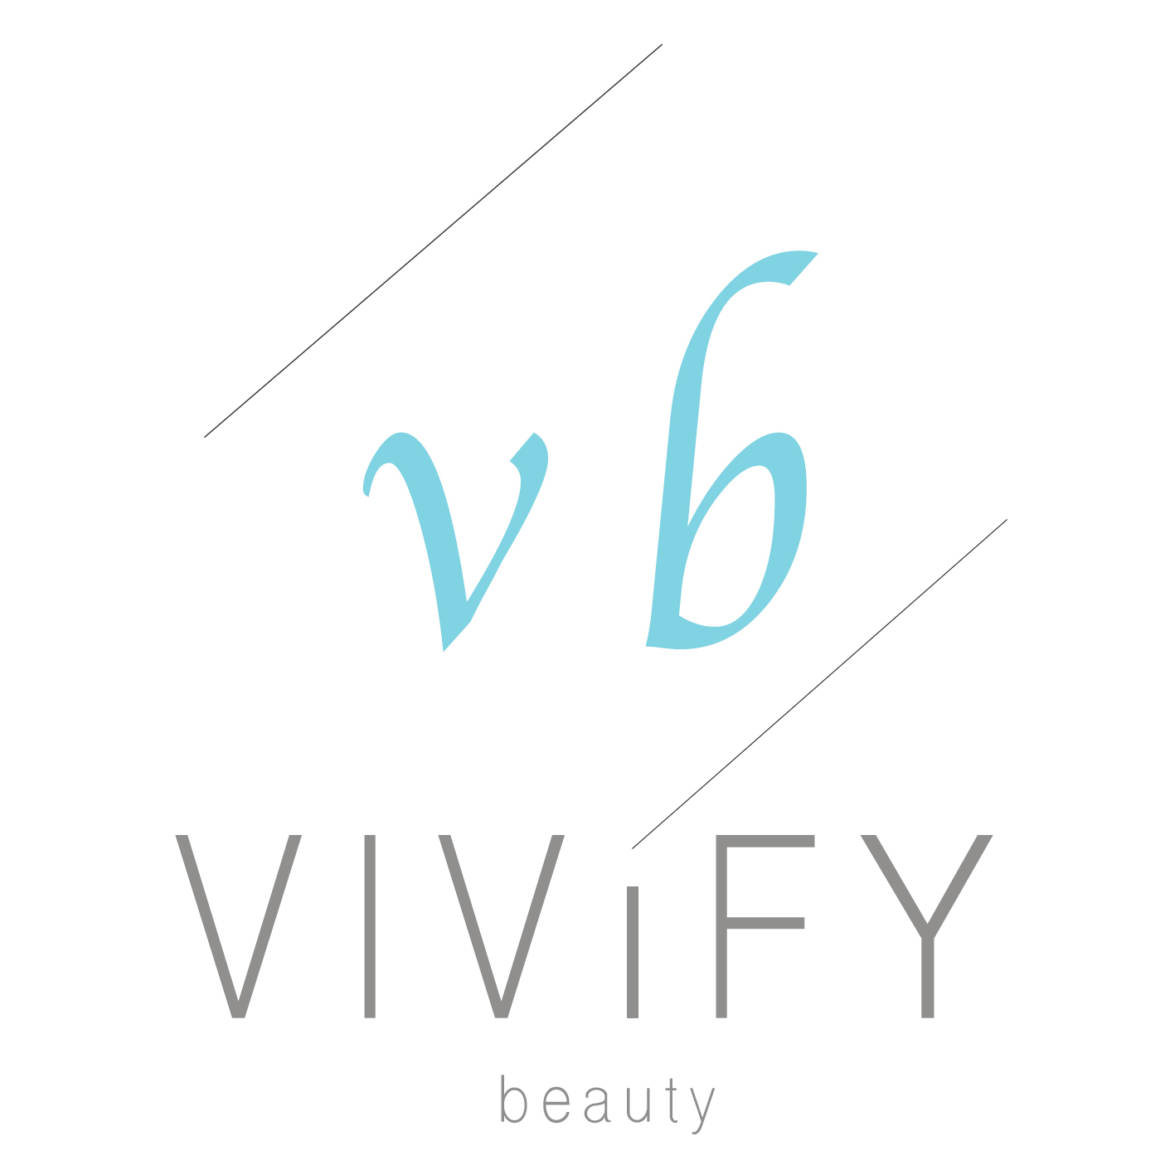 Vivify-Beauty-Logo-1411-square.jpg